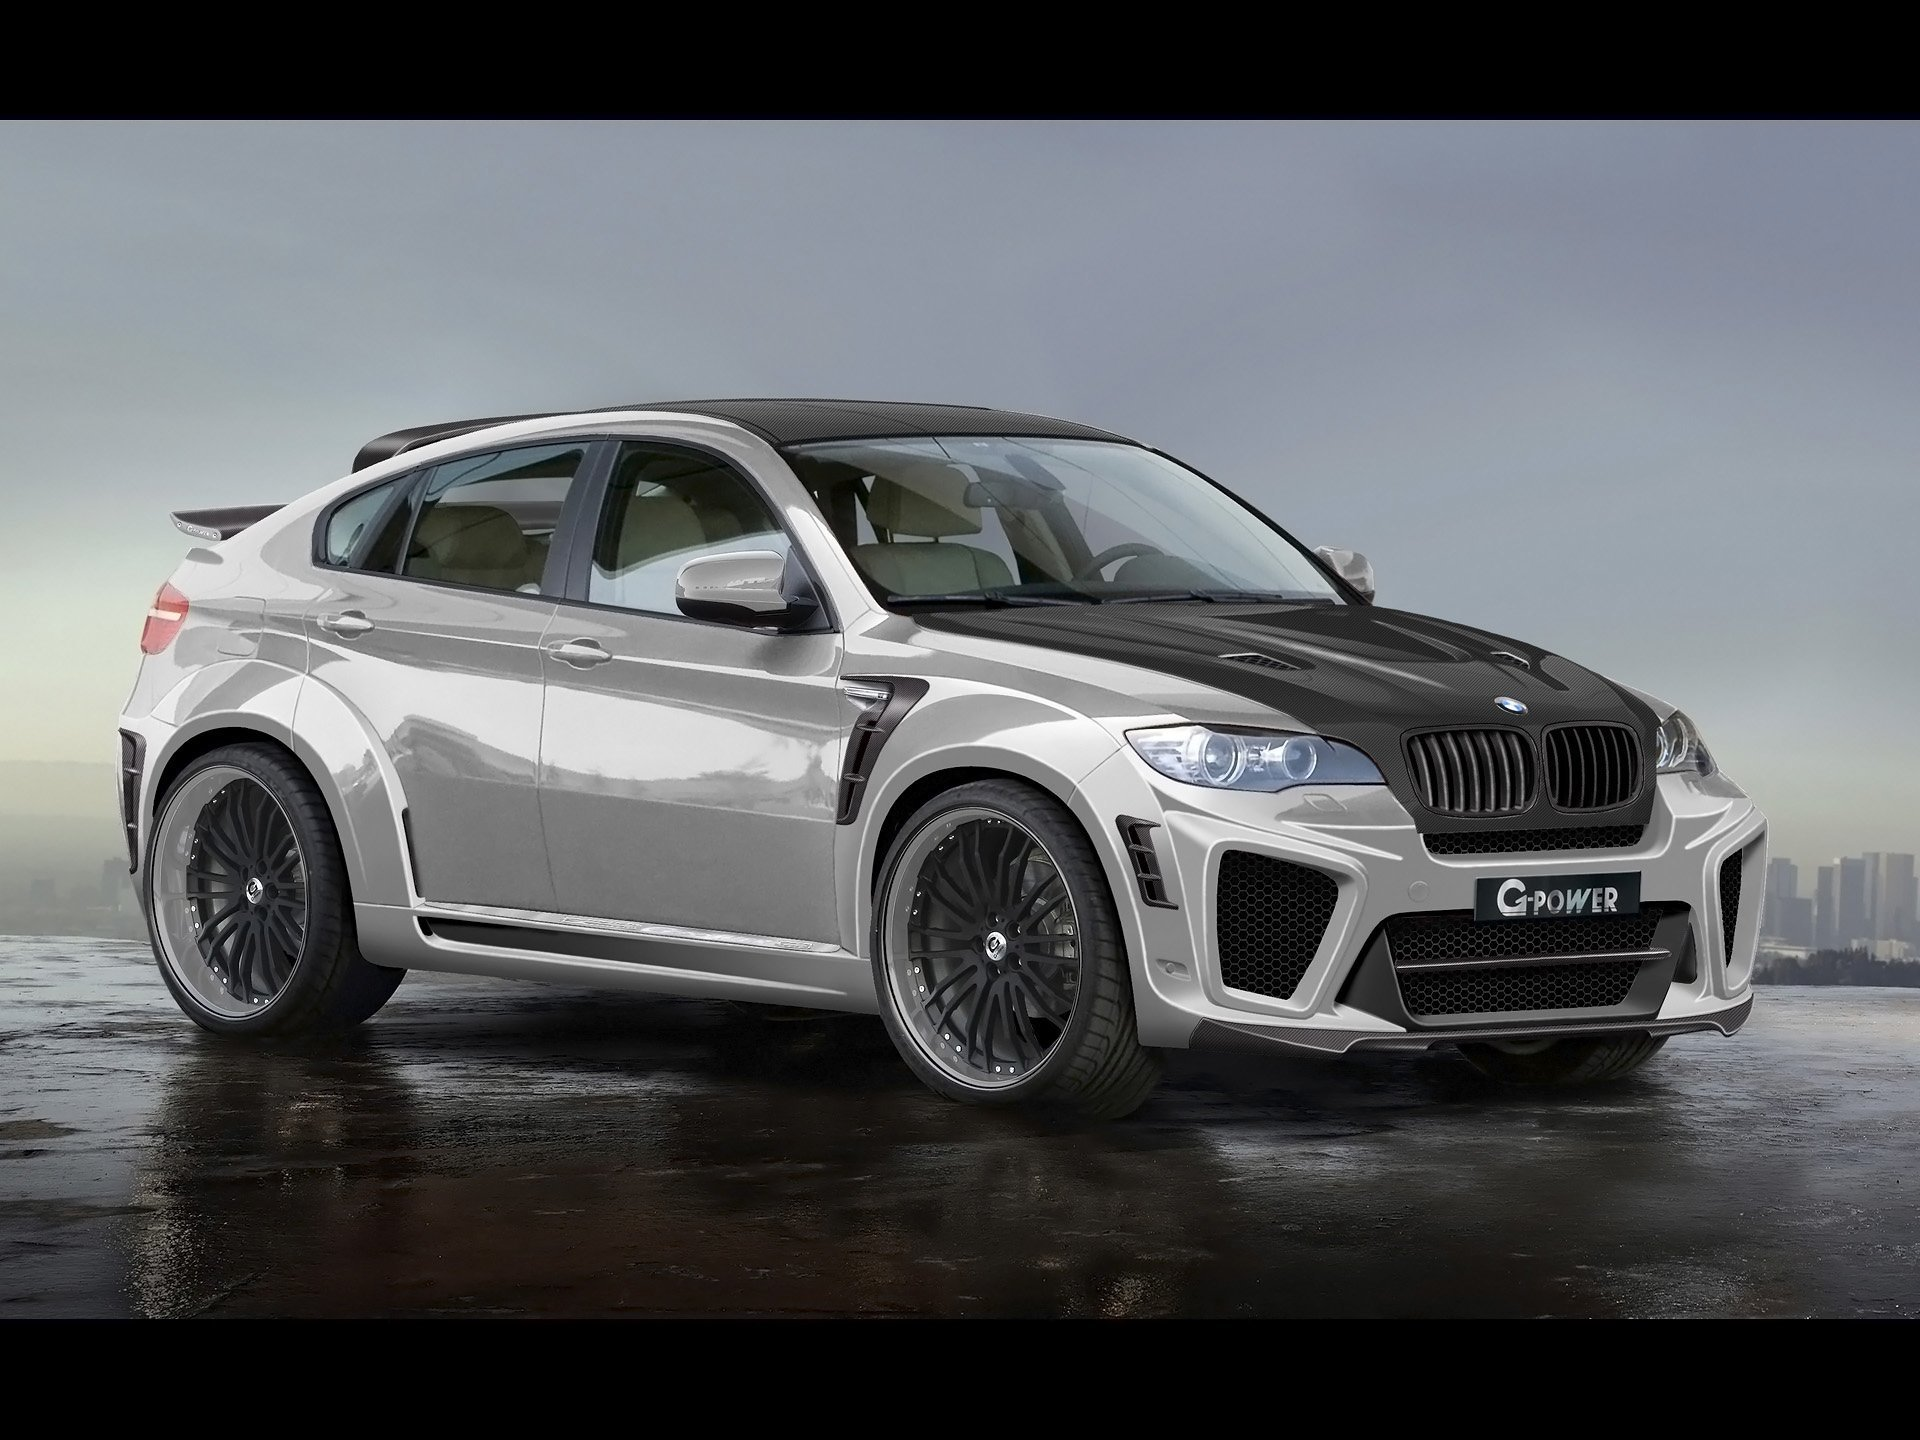 BMW X6 Typhoon